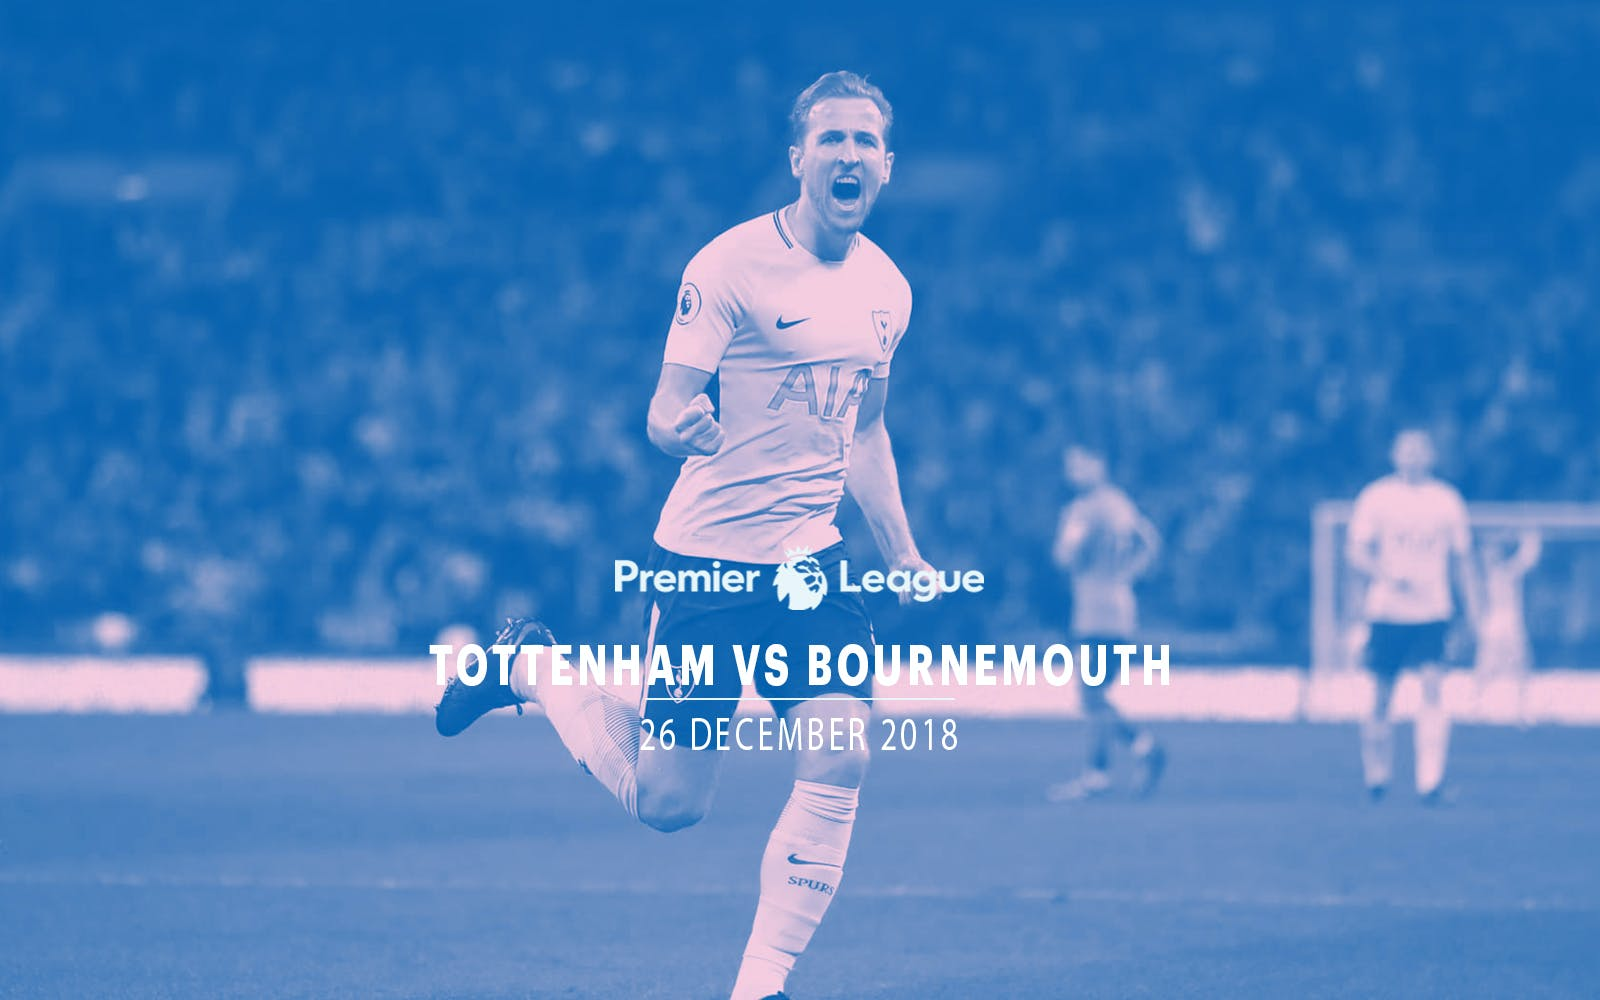 tottenham vs bournemouth - 26th dec'18-1